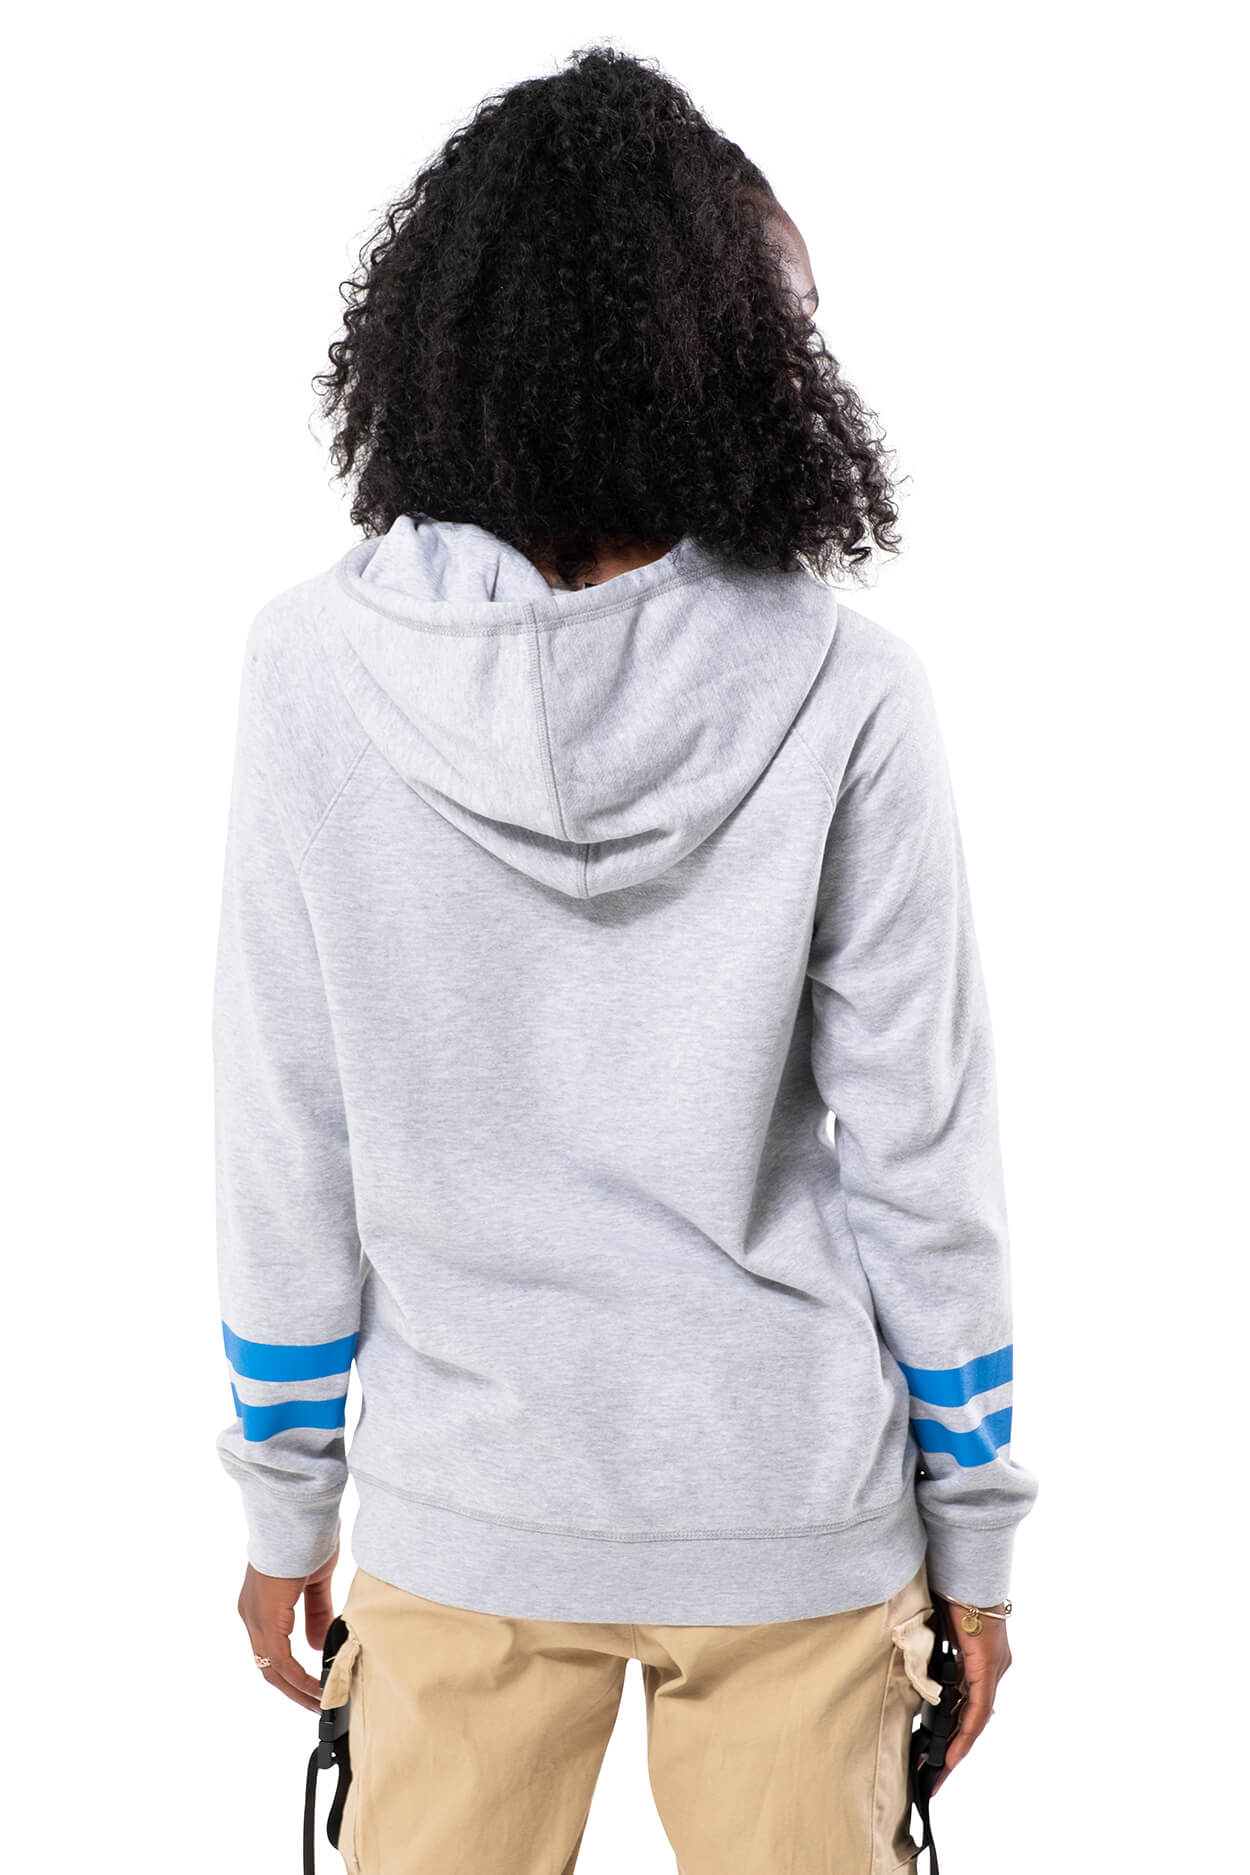 NBA Dallas Mavericks Women's Hoodie Varsity Stripe|Dallas Mavericks